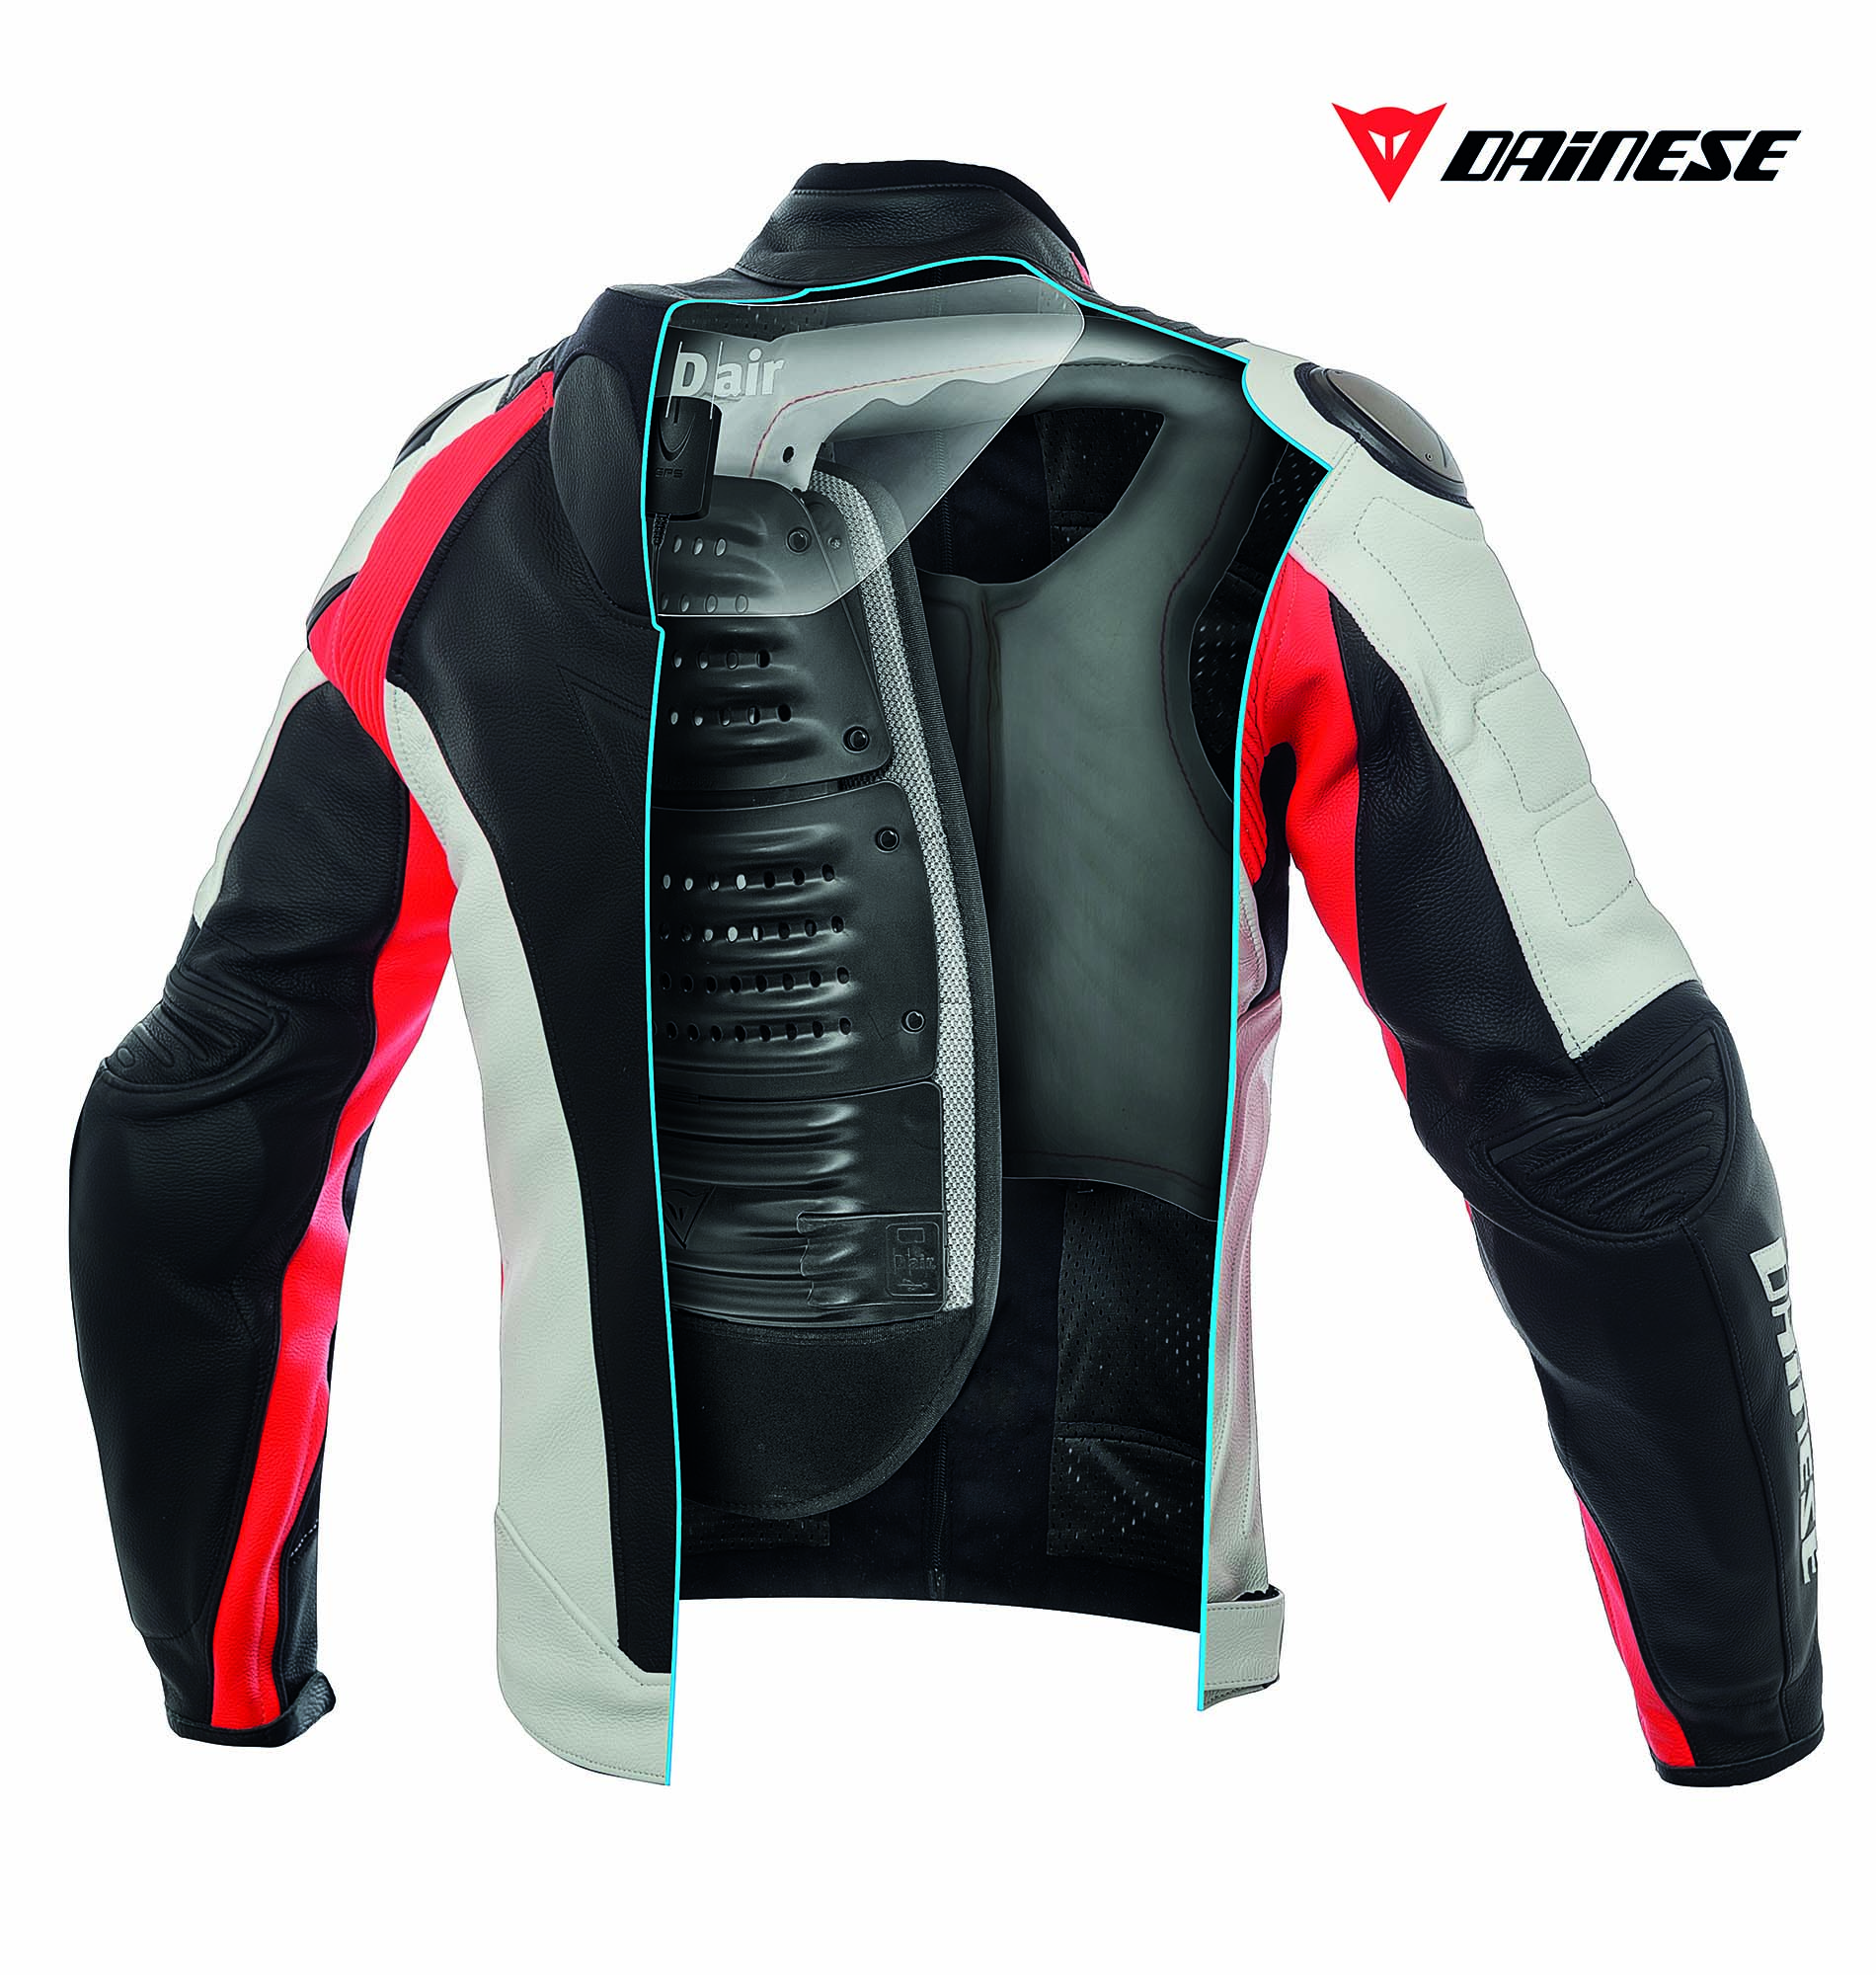 Dainese Just Made Your Motorcycle Jacket Obsolete Asphalt Amp Rubber